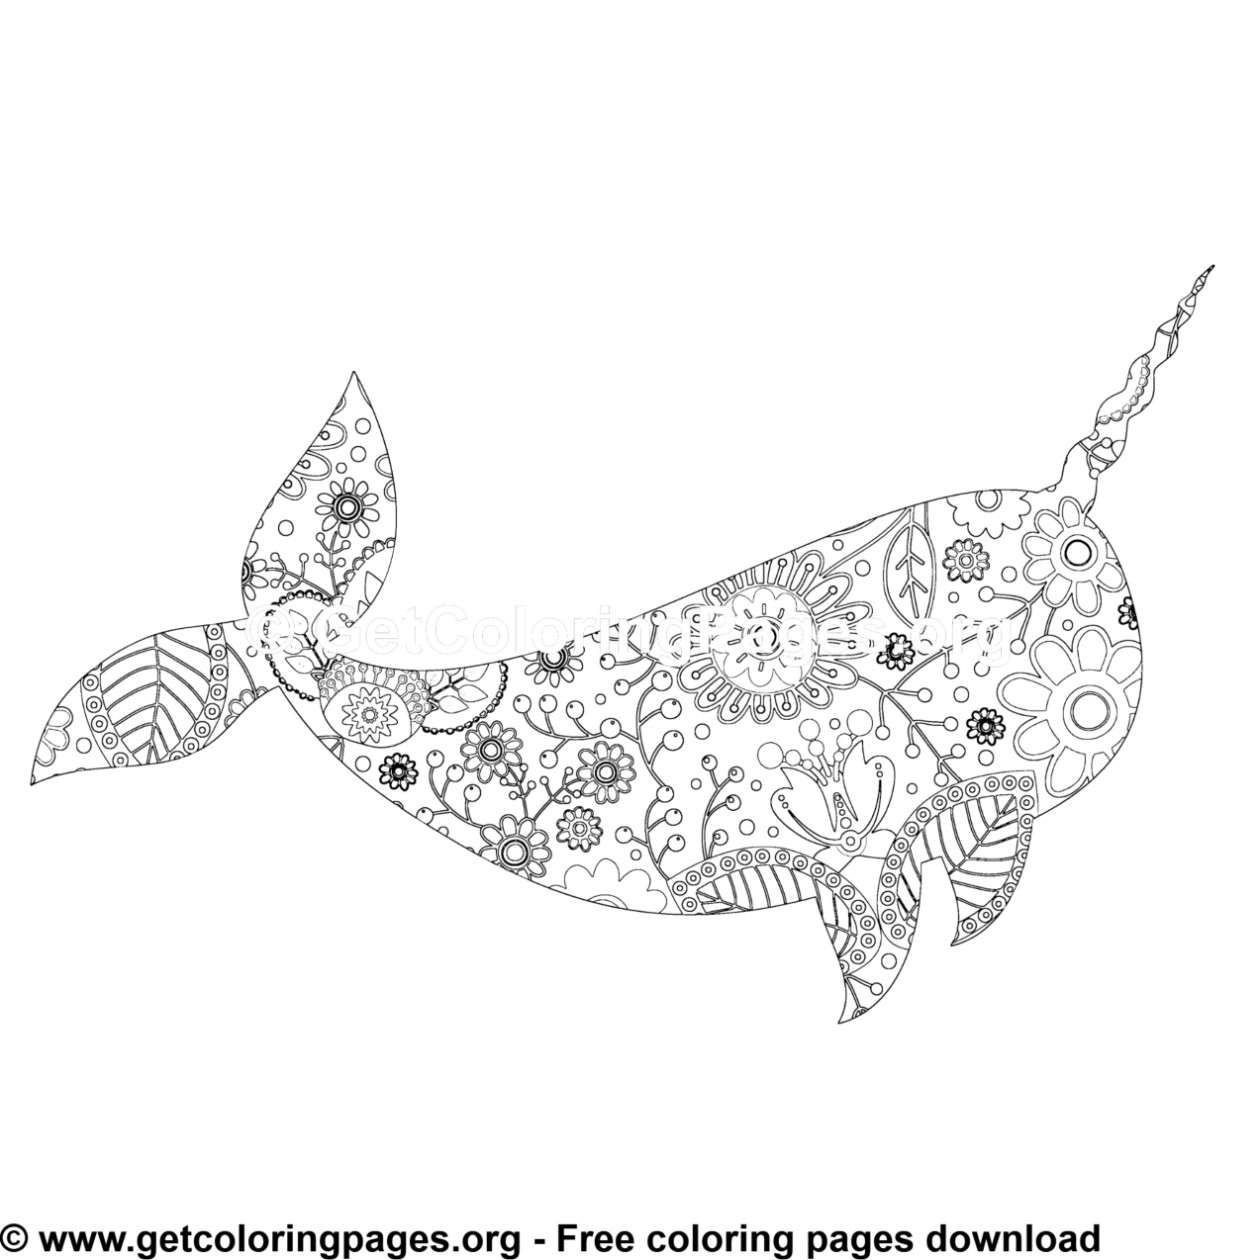 Zentangle Boho Narwhal Coloring Pages Coloring Pages Color